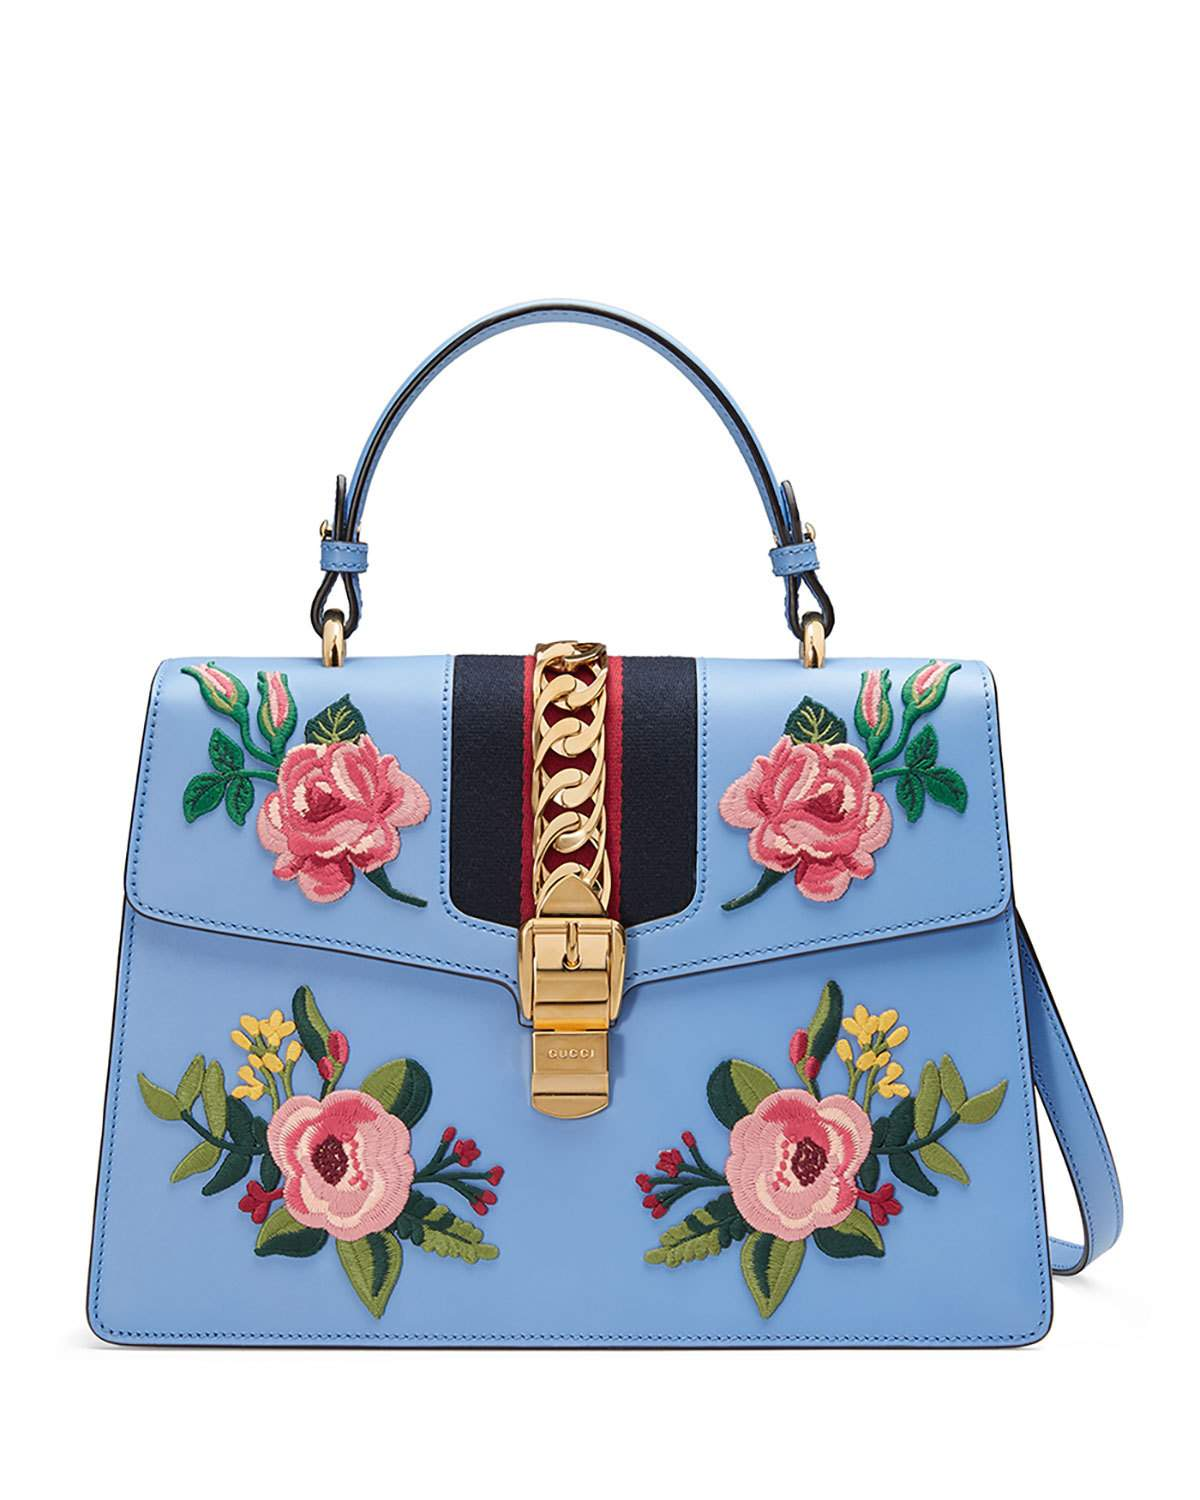 Gucci Resort 2017 Bag Collection